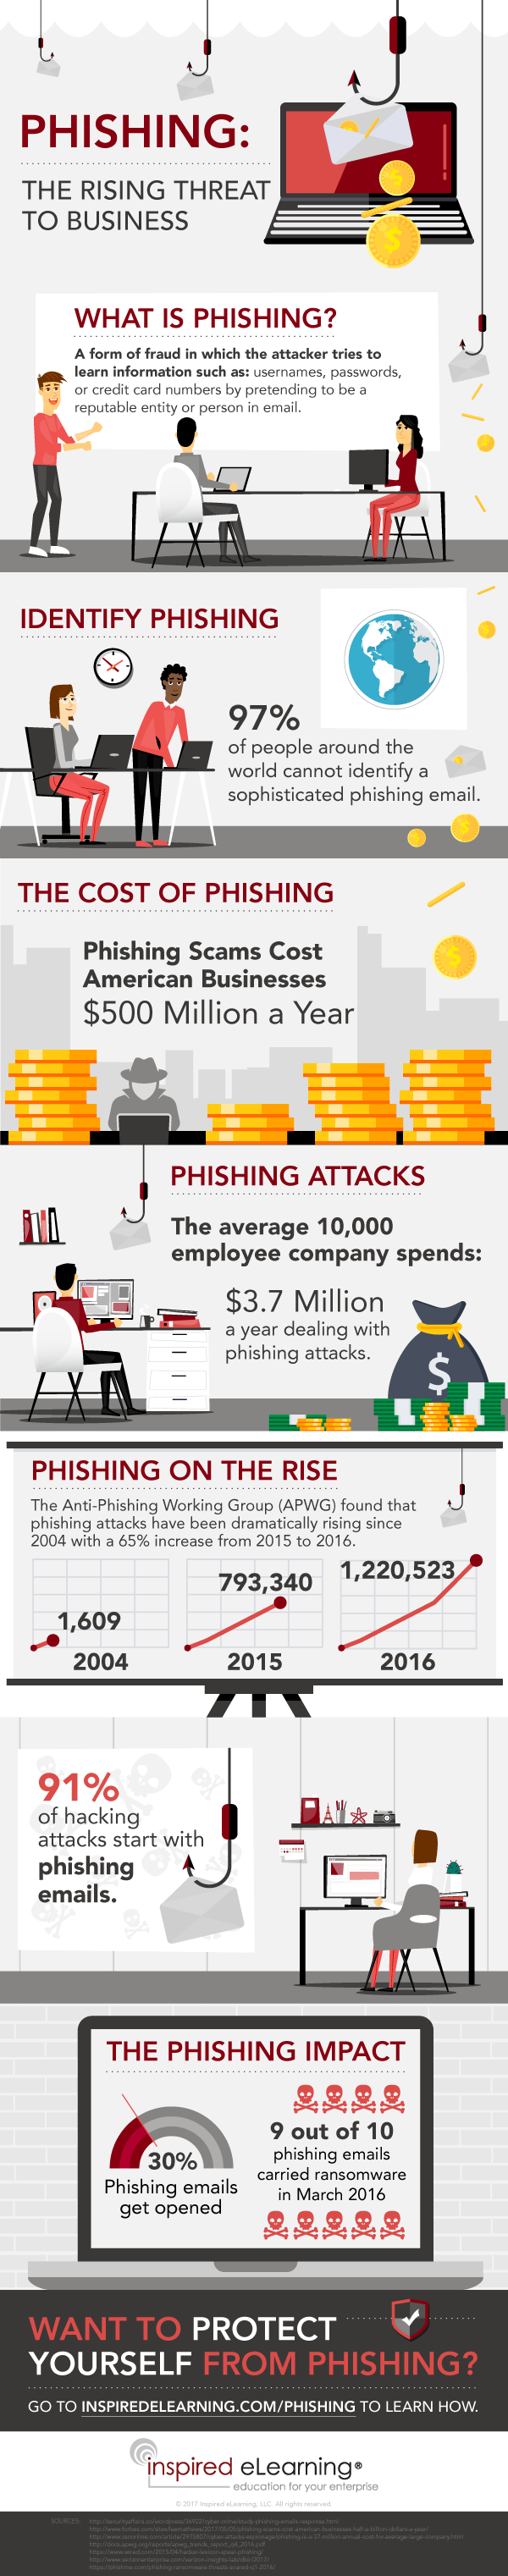 Phishing_Infographic-1-a6659337e40be1321951f2006ced7c2c5a57c328